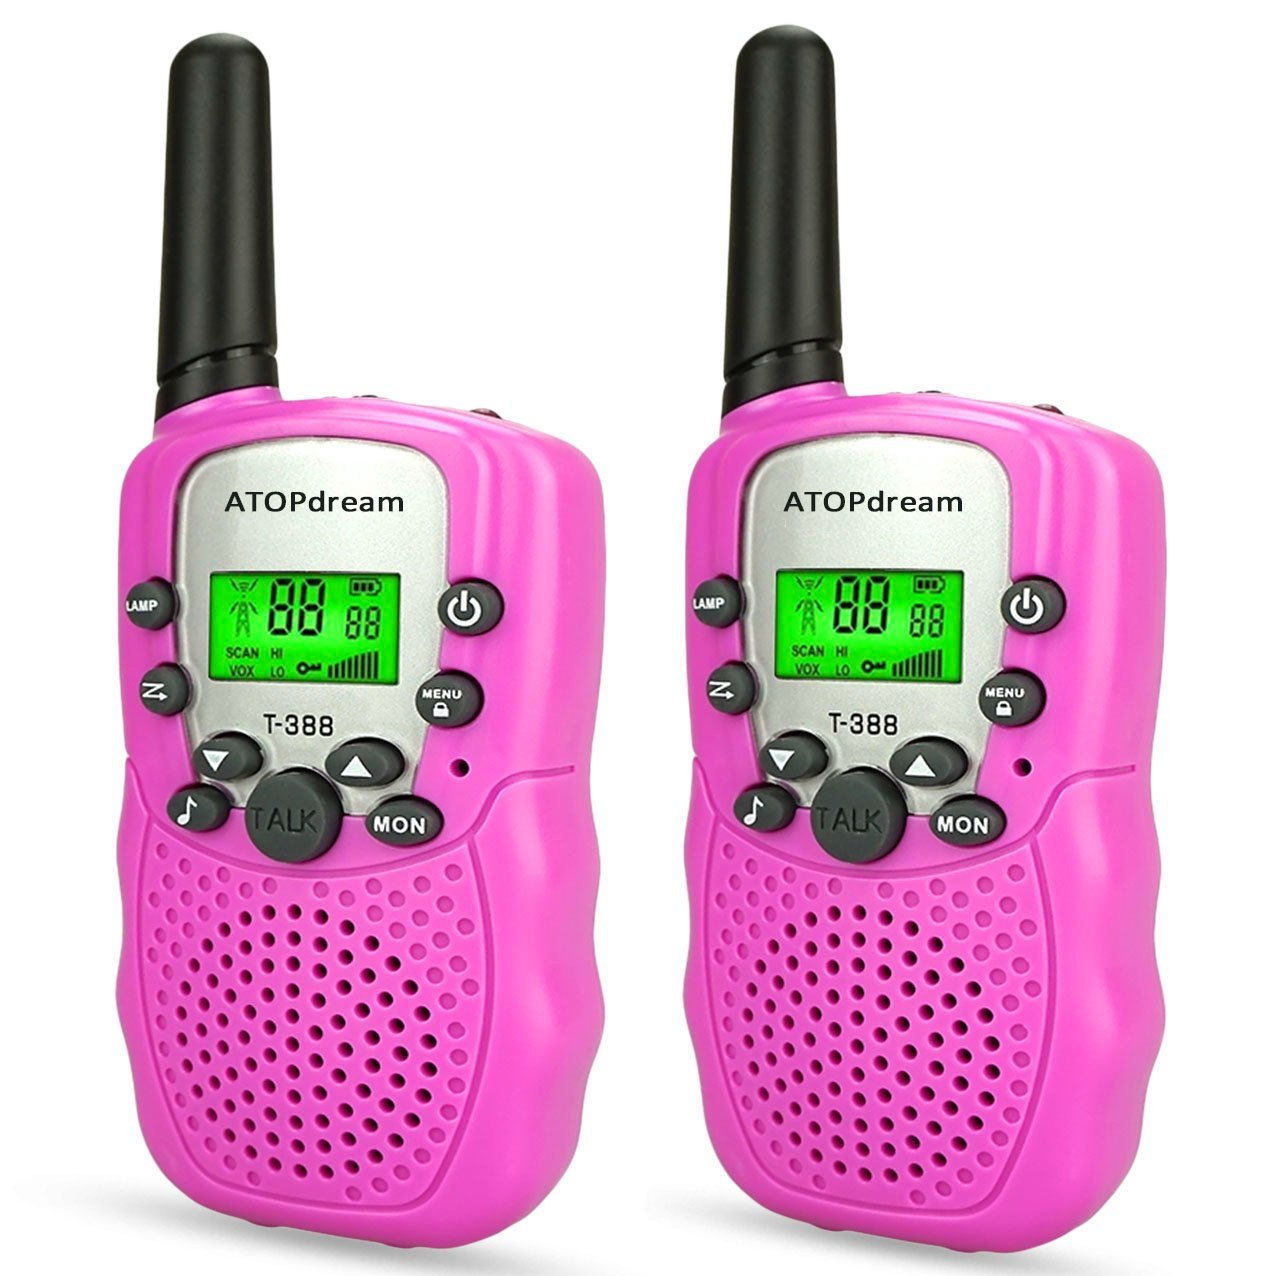 TOP Gift Toys for 3-12 Year Old Girls, Handheld Walkie Talkies for Kids 2 Mile Hunting Accessories 2018 Christmas New for Kids Boys Girls 3-12 Stocking Fillers Pink TGDJ06 by Dreamingbox